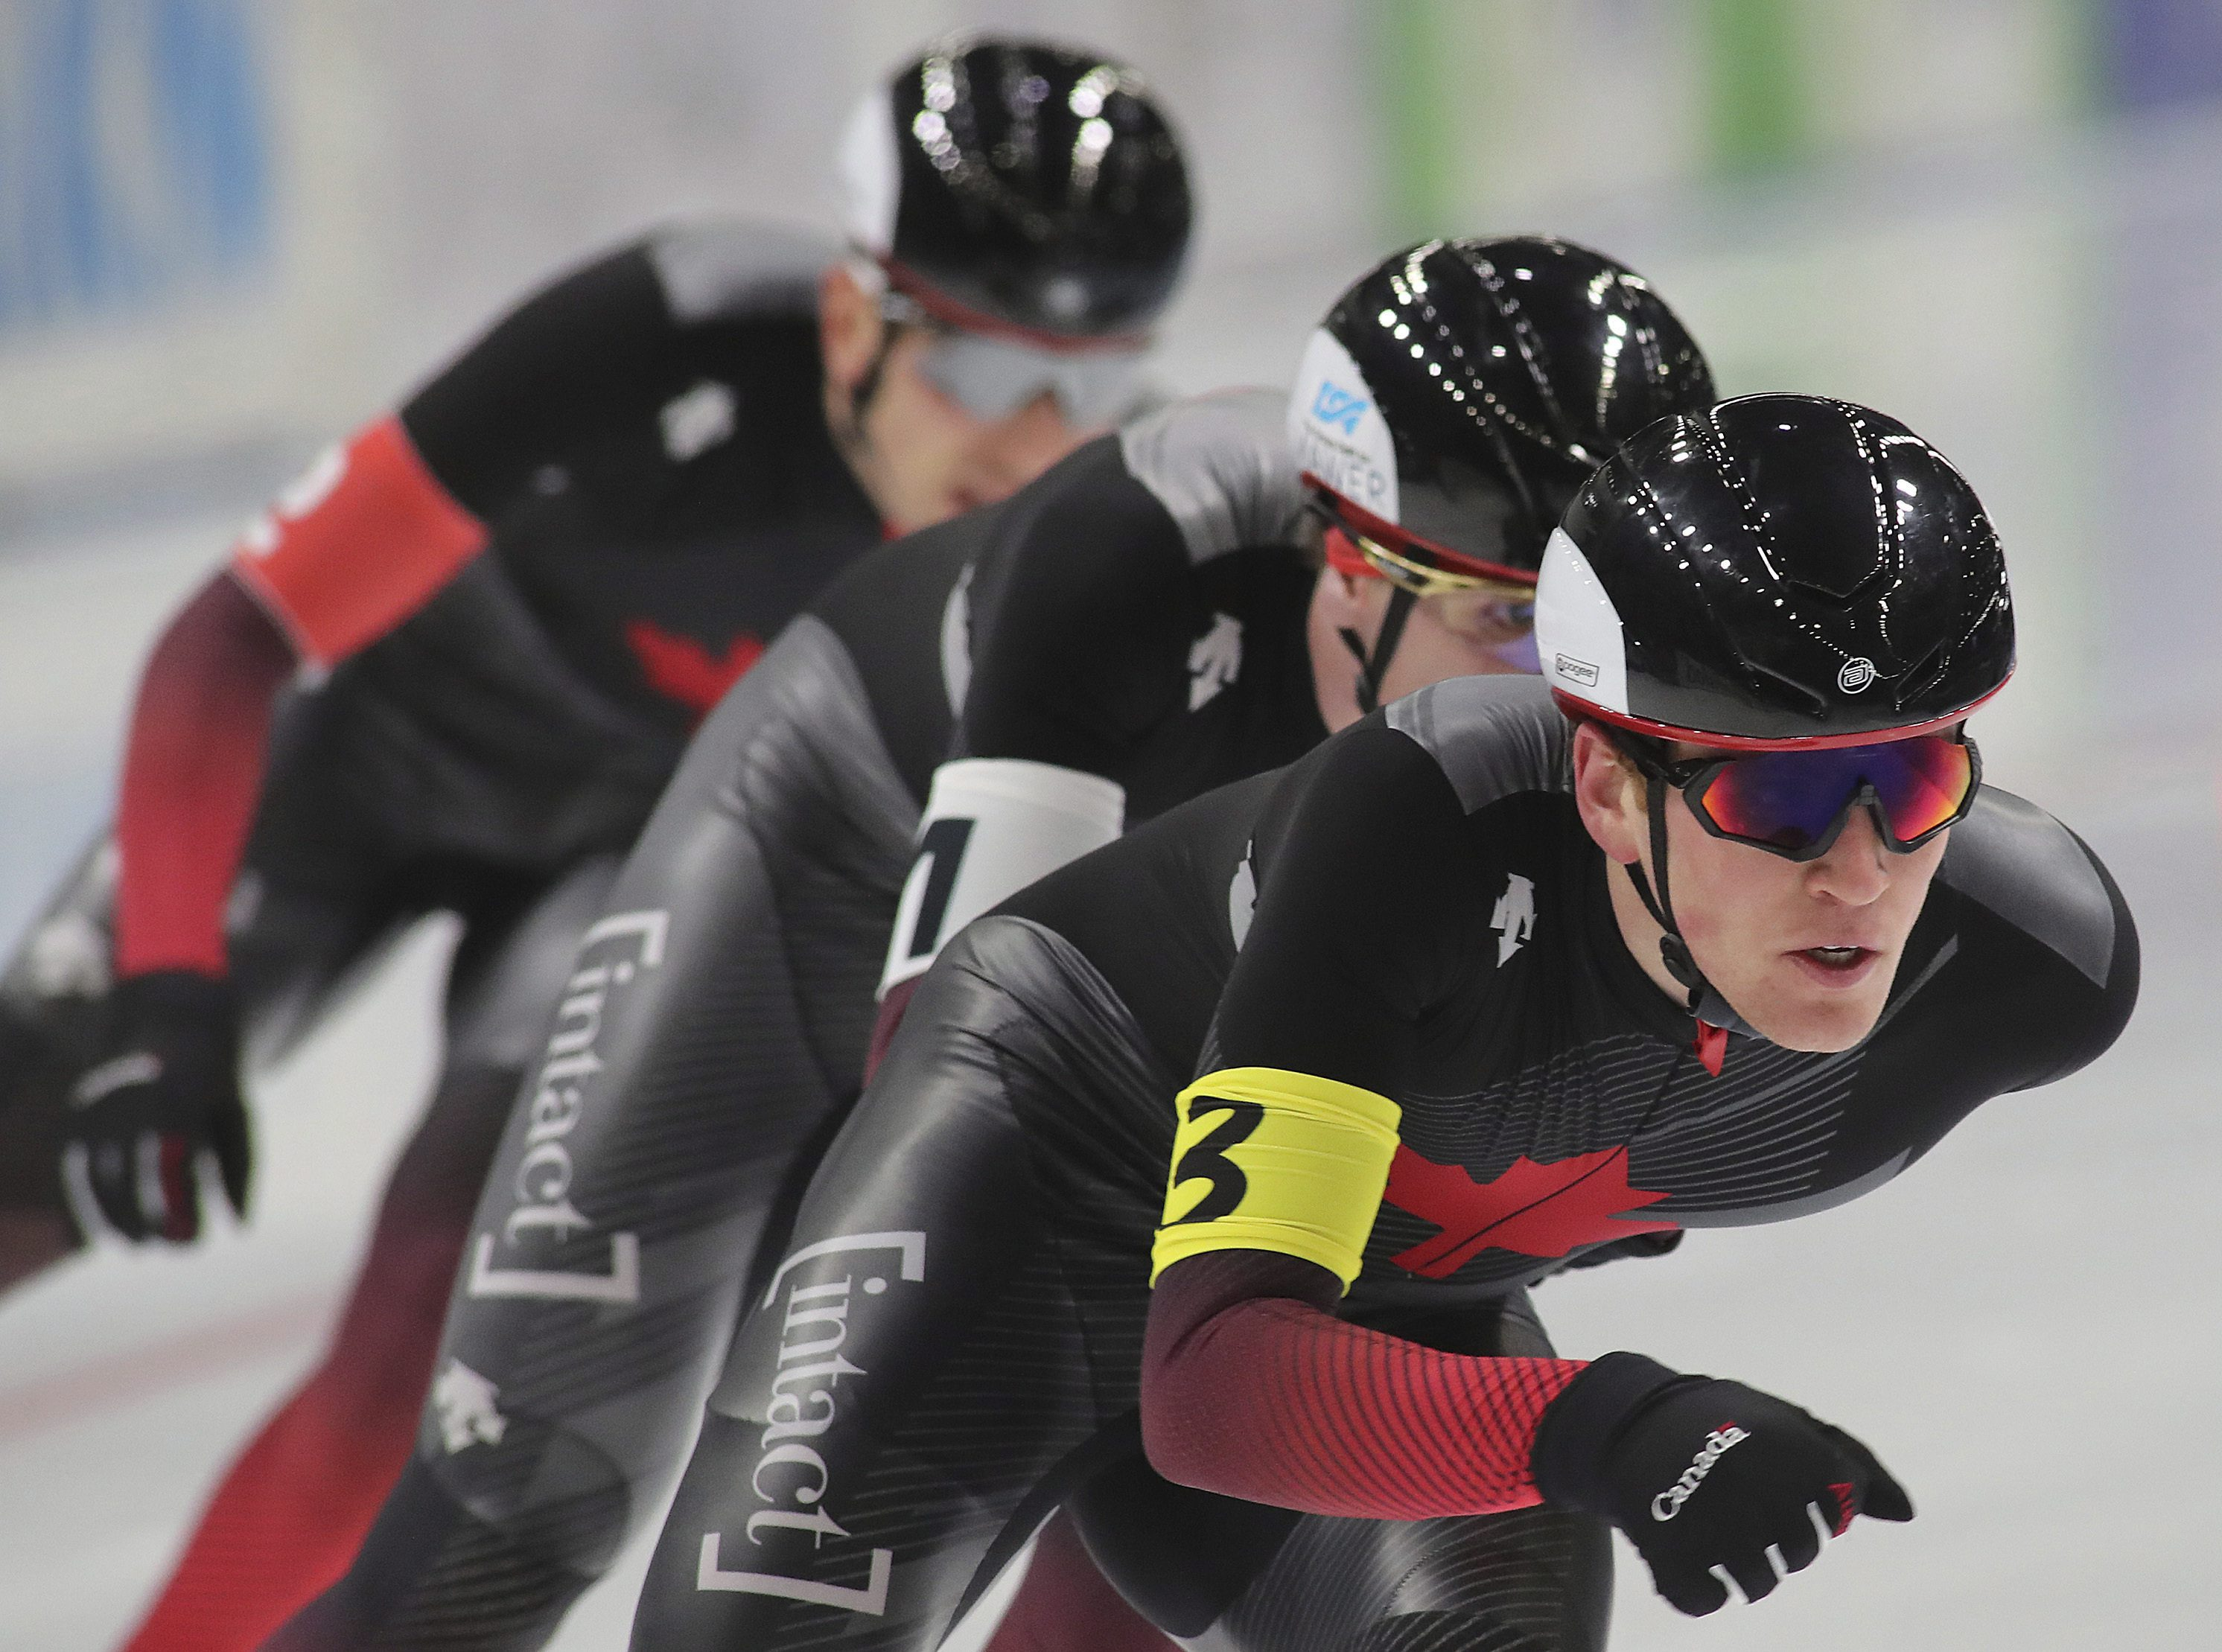 Canada's team in action during the men's team race of ISU Speedskating World Cup in Tomaszow Mazowiecki, Poland, Sunday , Nov. 24, 2019. (AP Photo/Marian Zubrzycki)